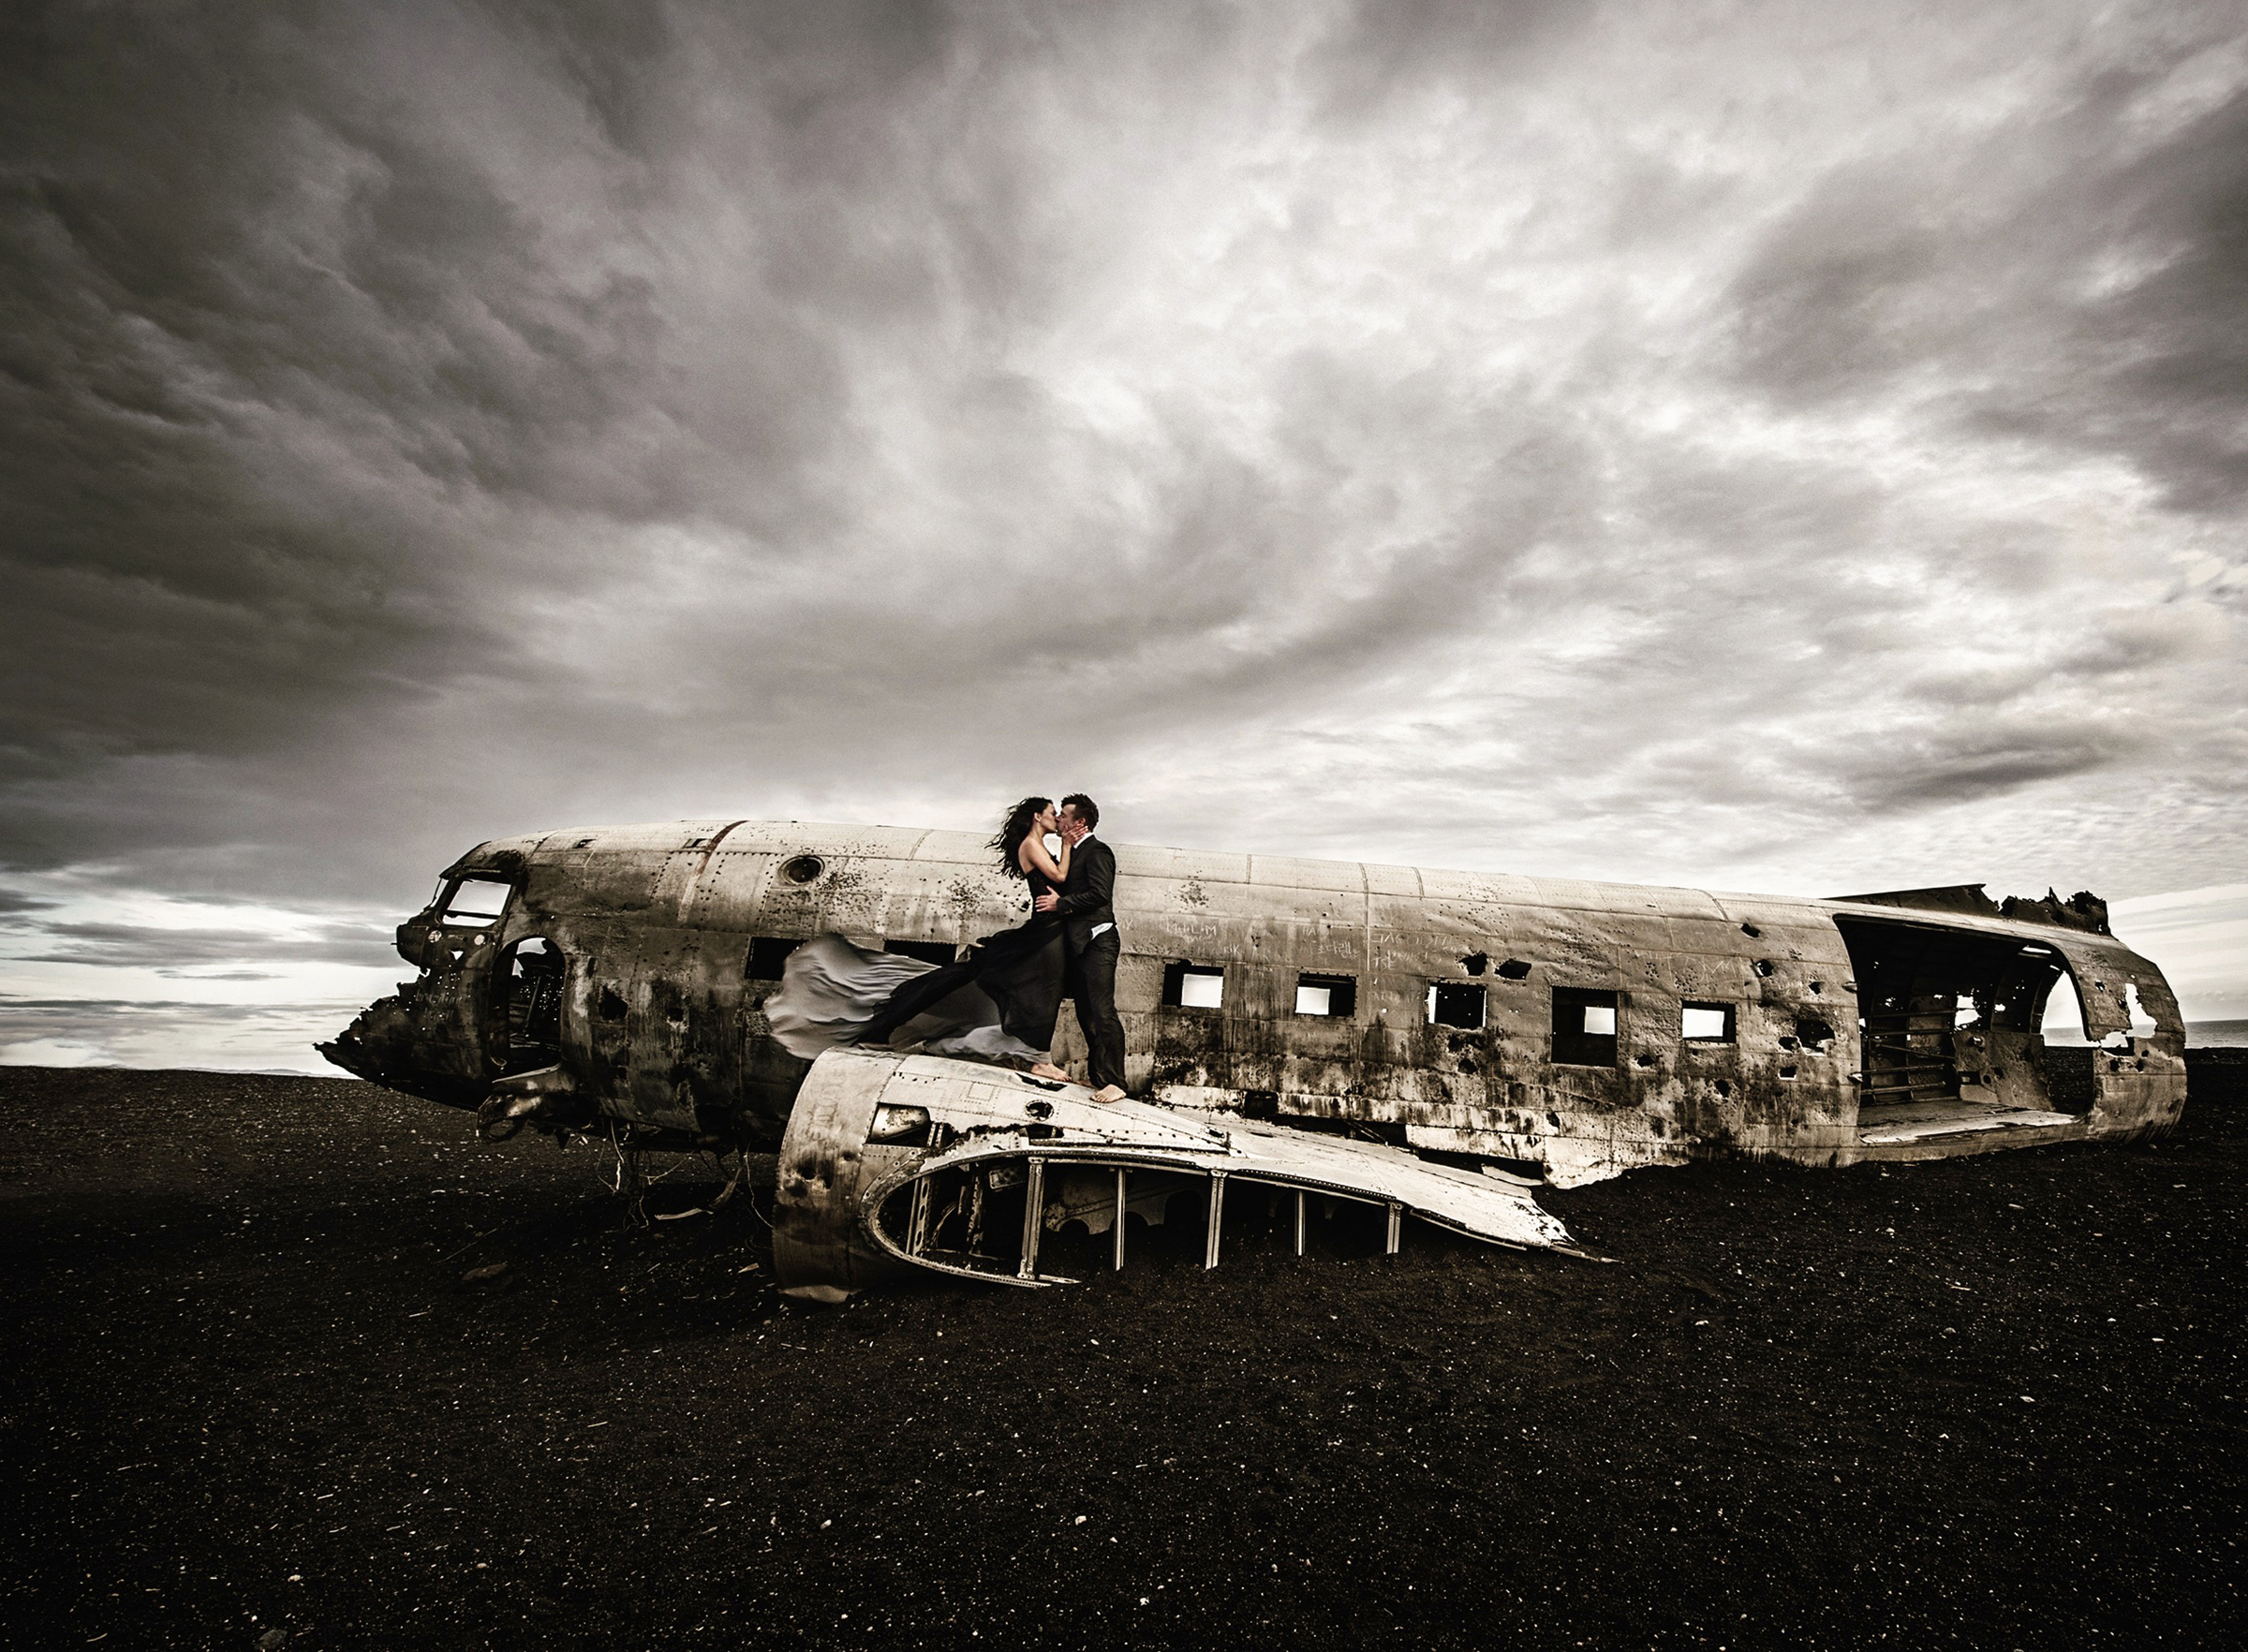 Couple kiss at plane wreck site - photo by Frøydis